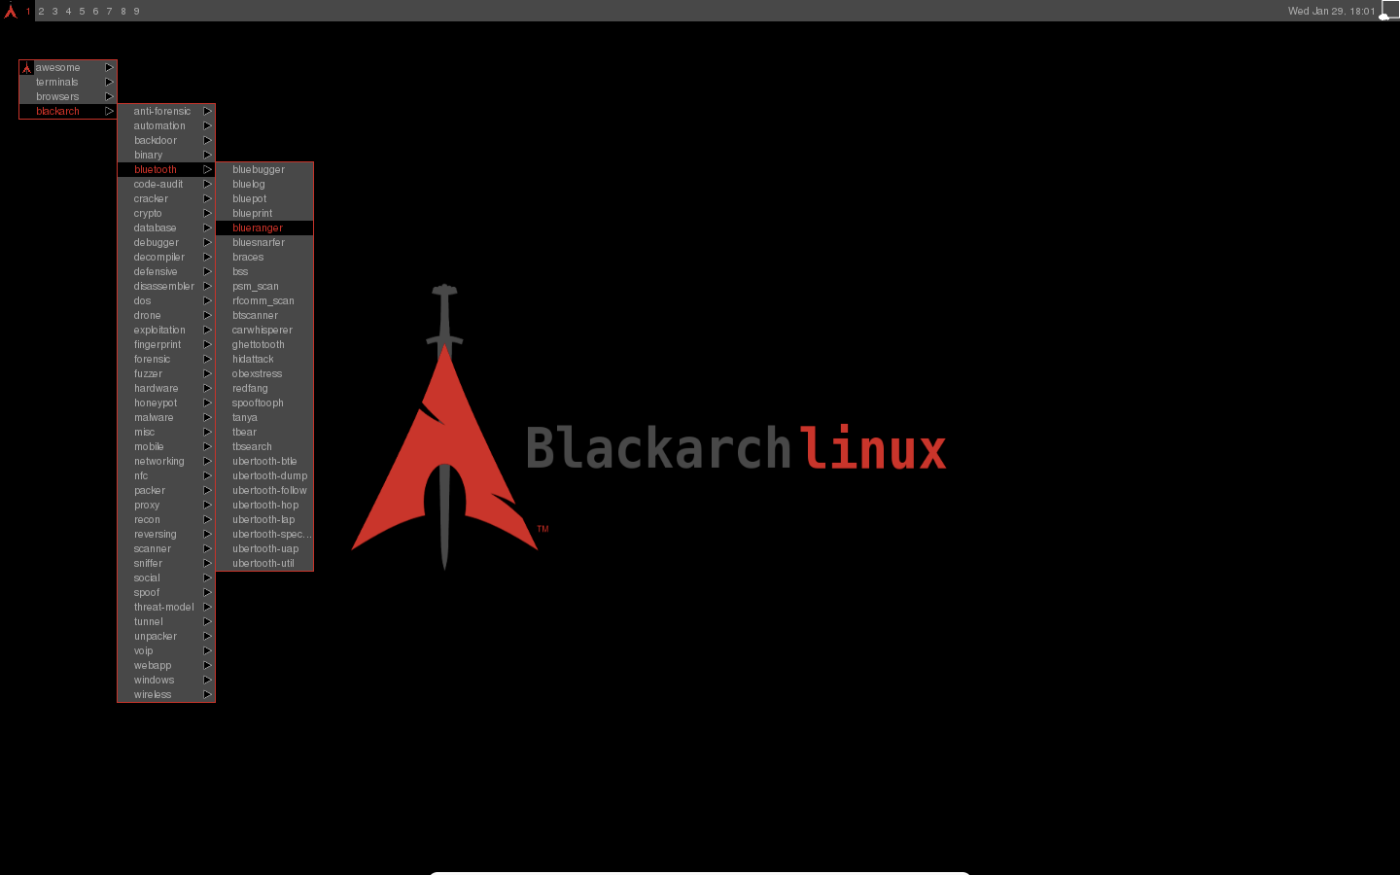 BlackArch Linux v2014 10 07 – Lightweight expansion to Arch